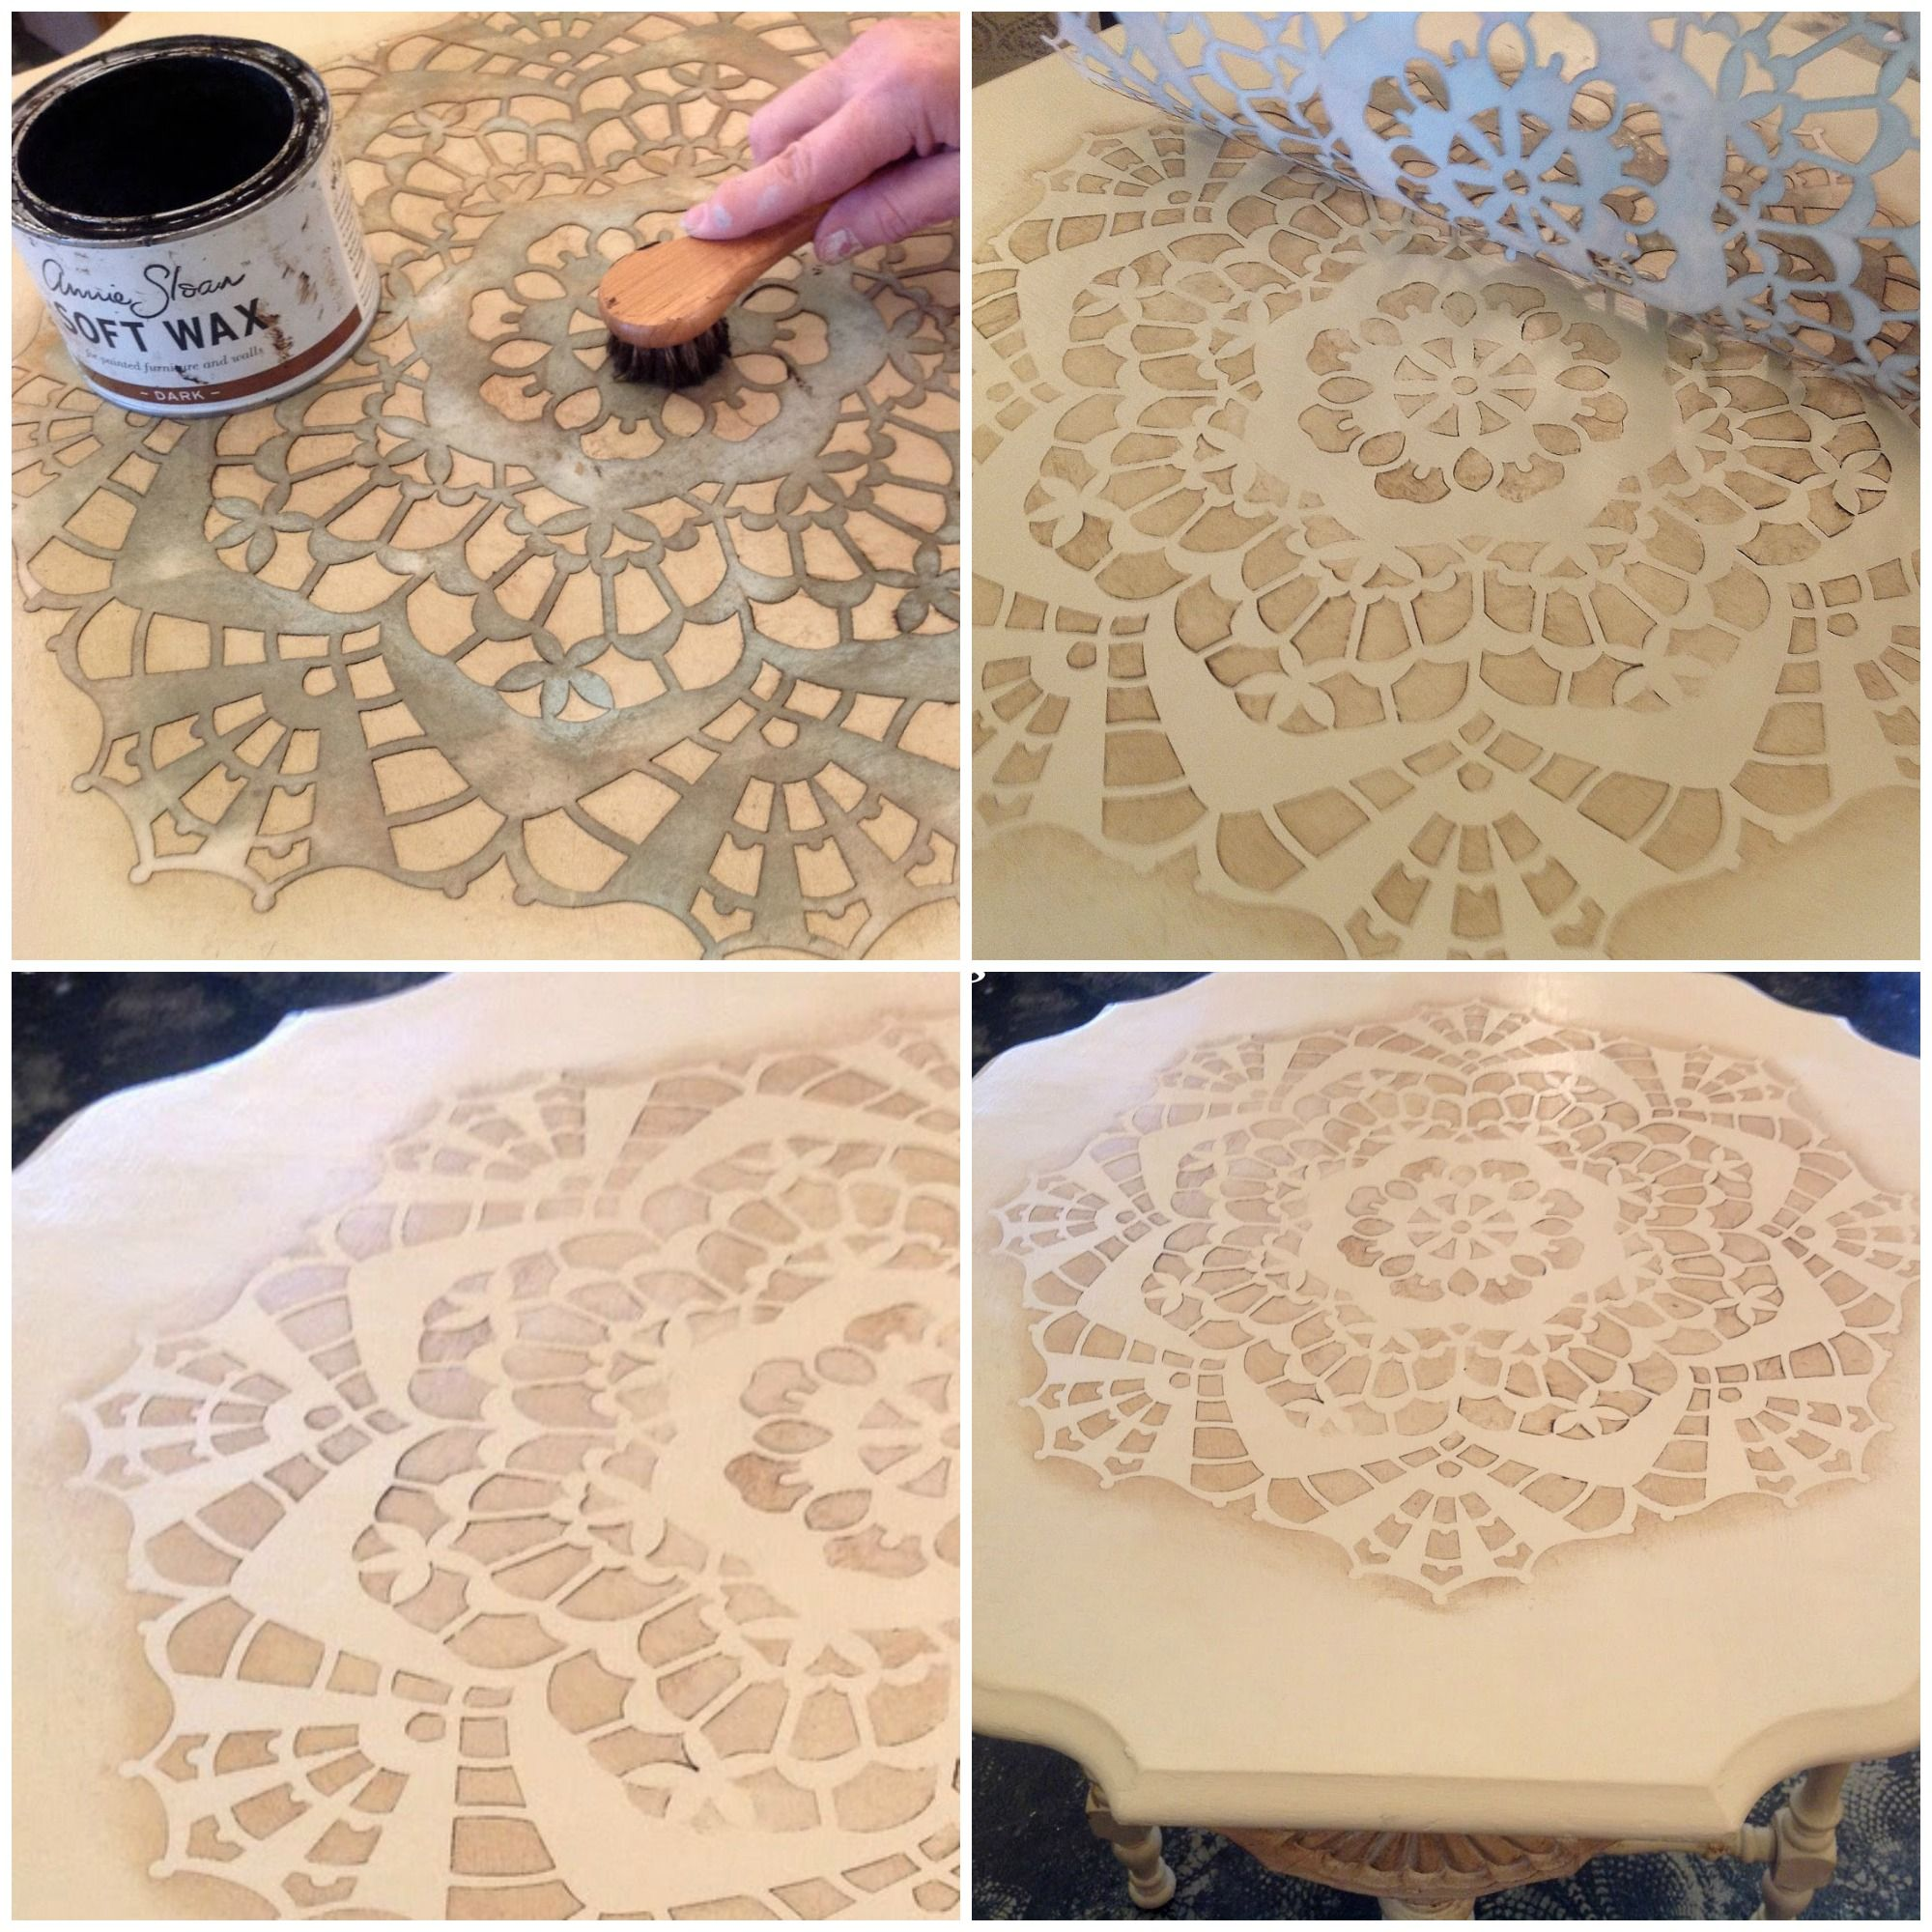 diana lace doily stencil annie sloan chalk paint in action